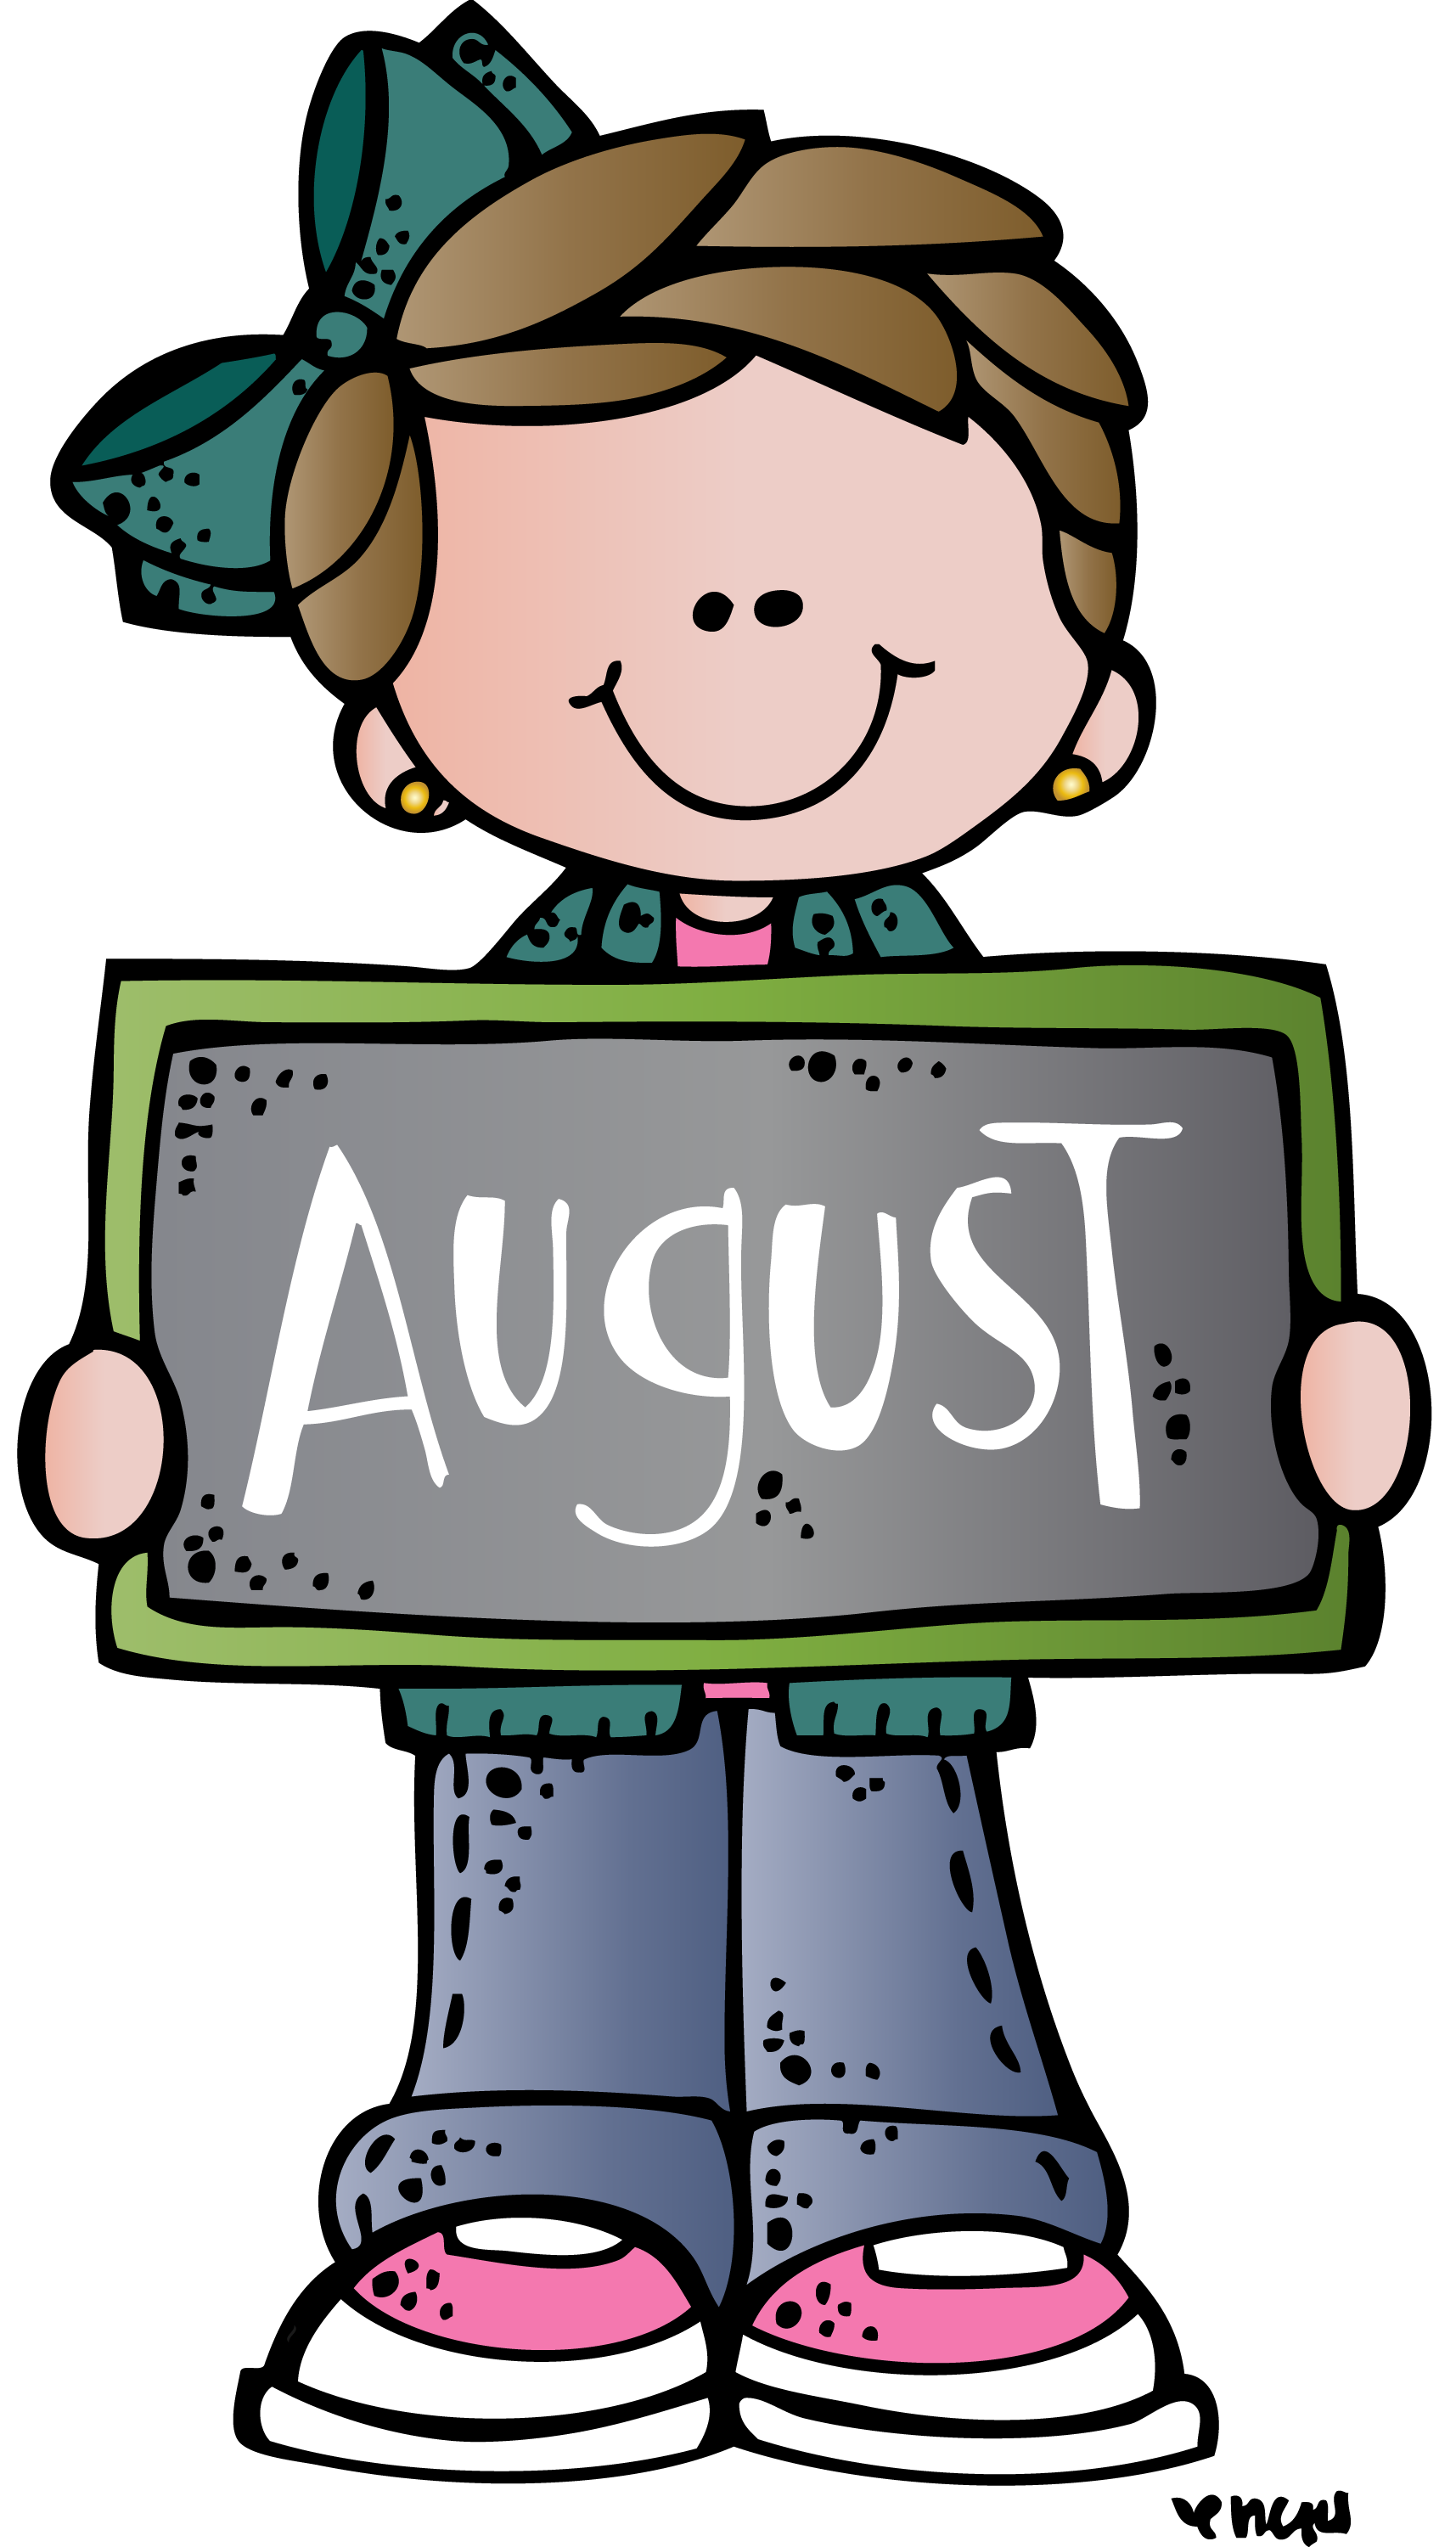 august mel melonheadz pinterest clip art school and teacher rh pinterest com augustus clipart augustus clipart